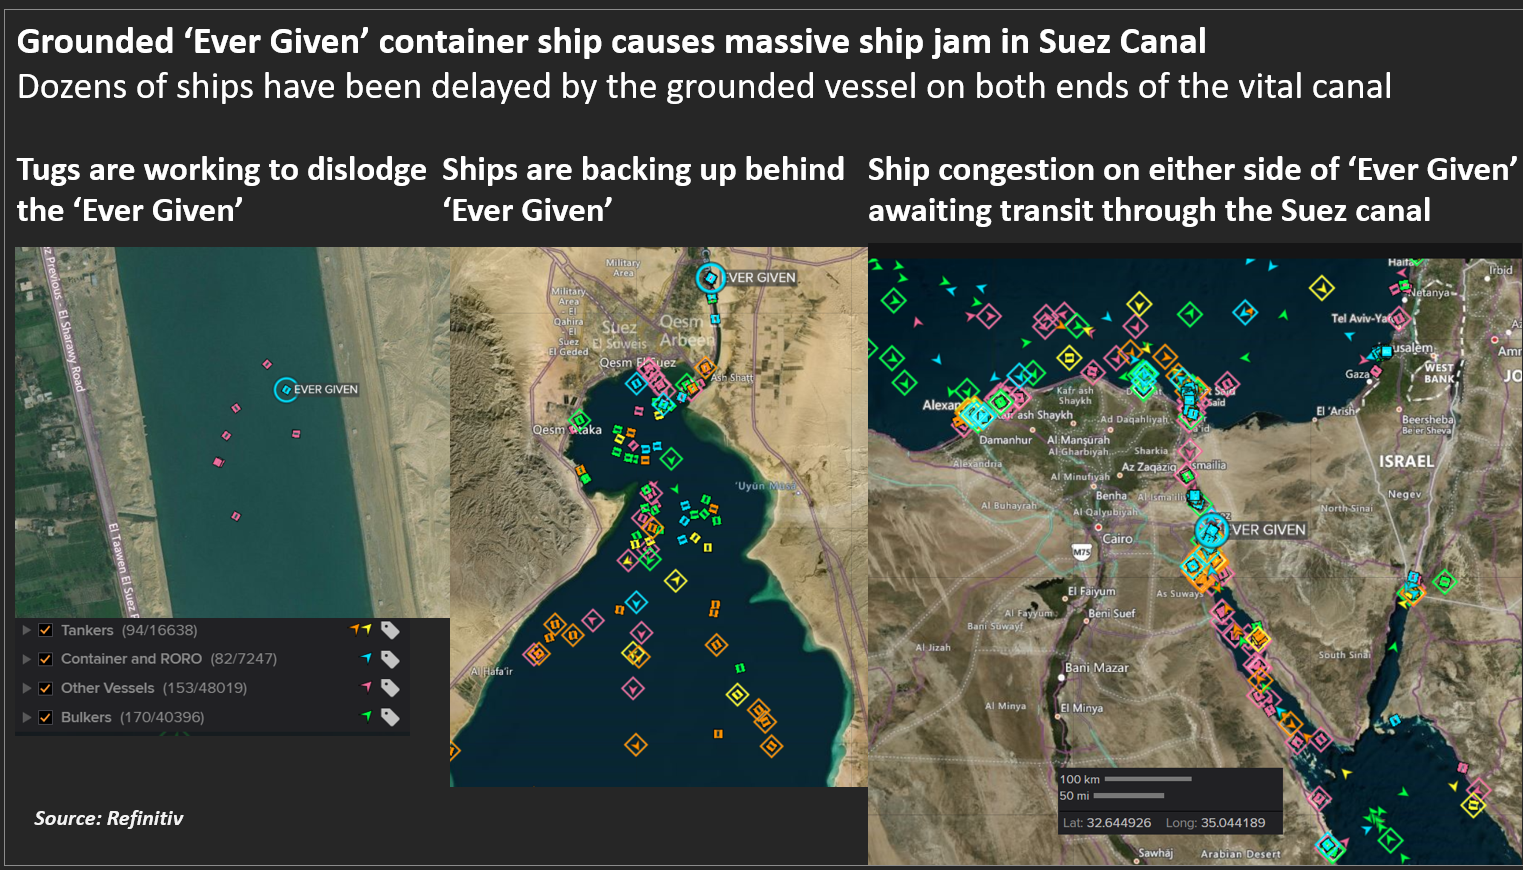 Grounded 'Ever Given' container ship causes massive ship jam in Suez Canal. Graphic: Reuters